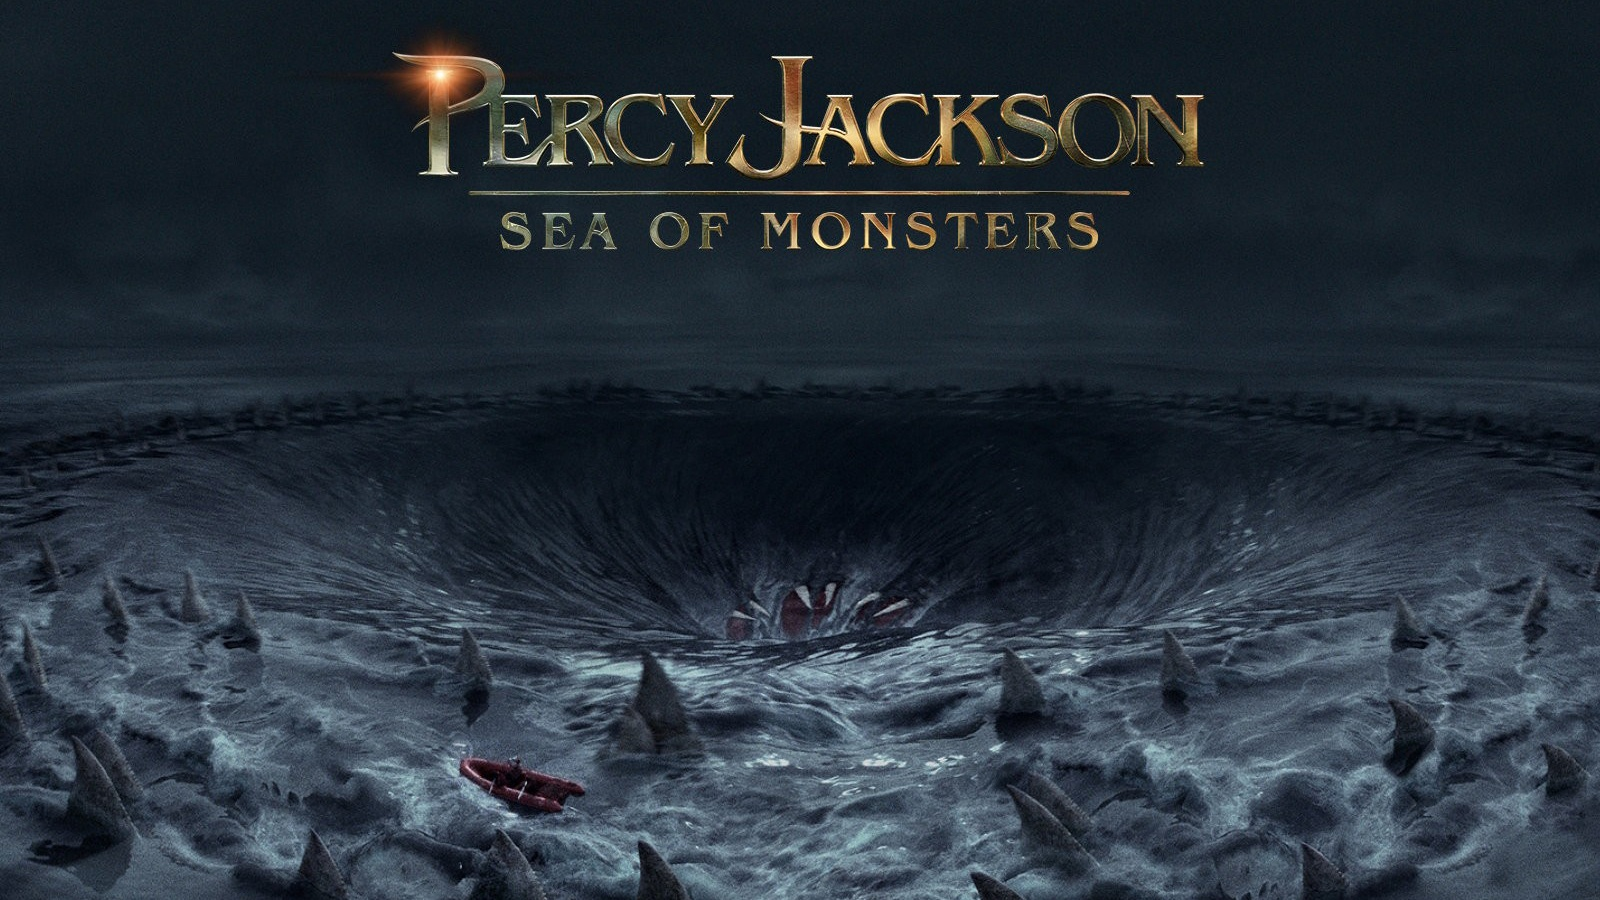 Percy Jackson: Sea of Monsters (2013) - HD 1080p